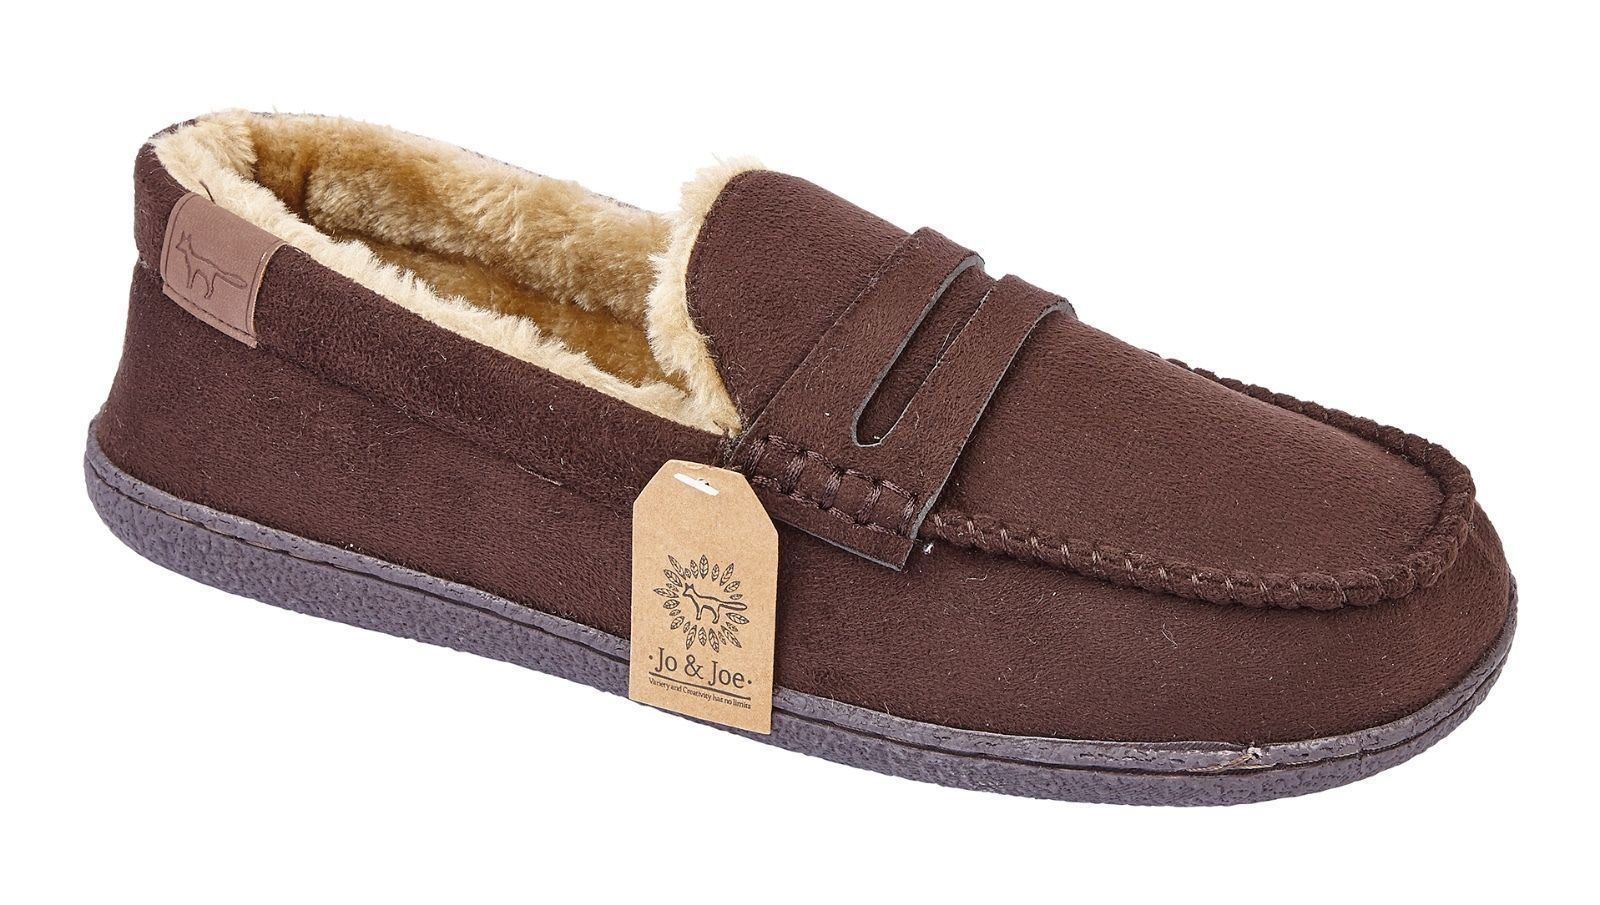 Mens-Faux-Suede-Leather-Moccasin-Slippers-Loafers-Casual-Shoes miniatura 5